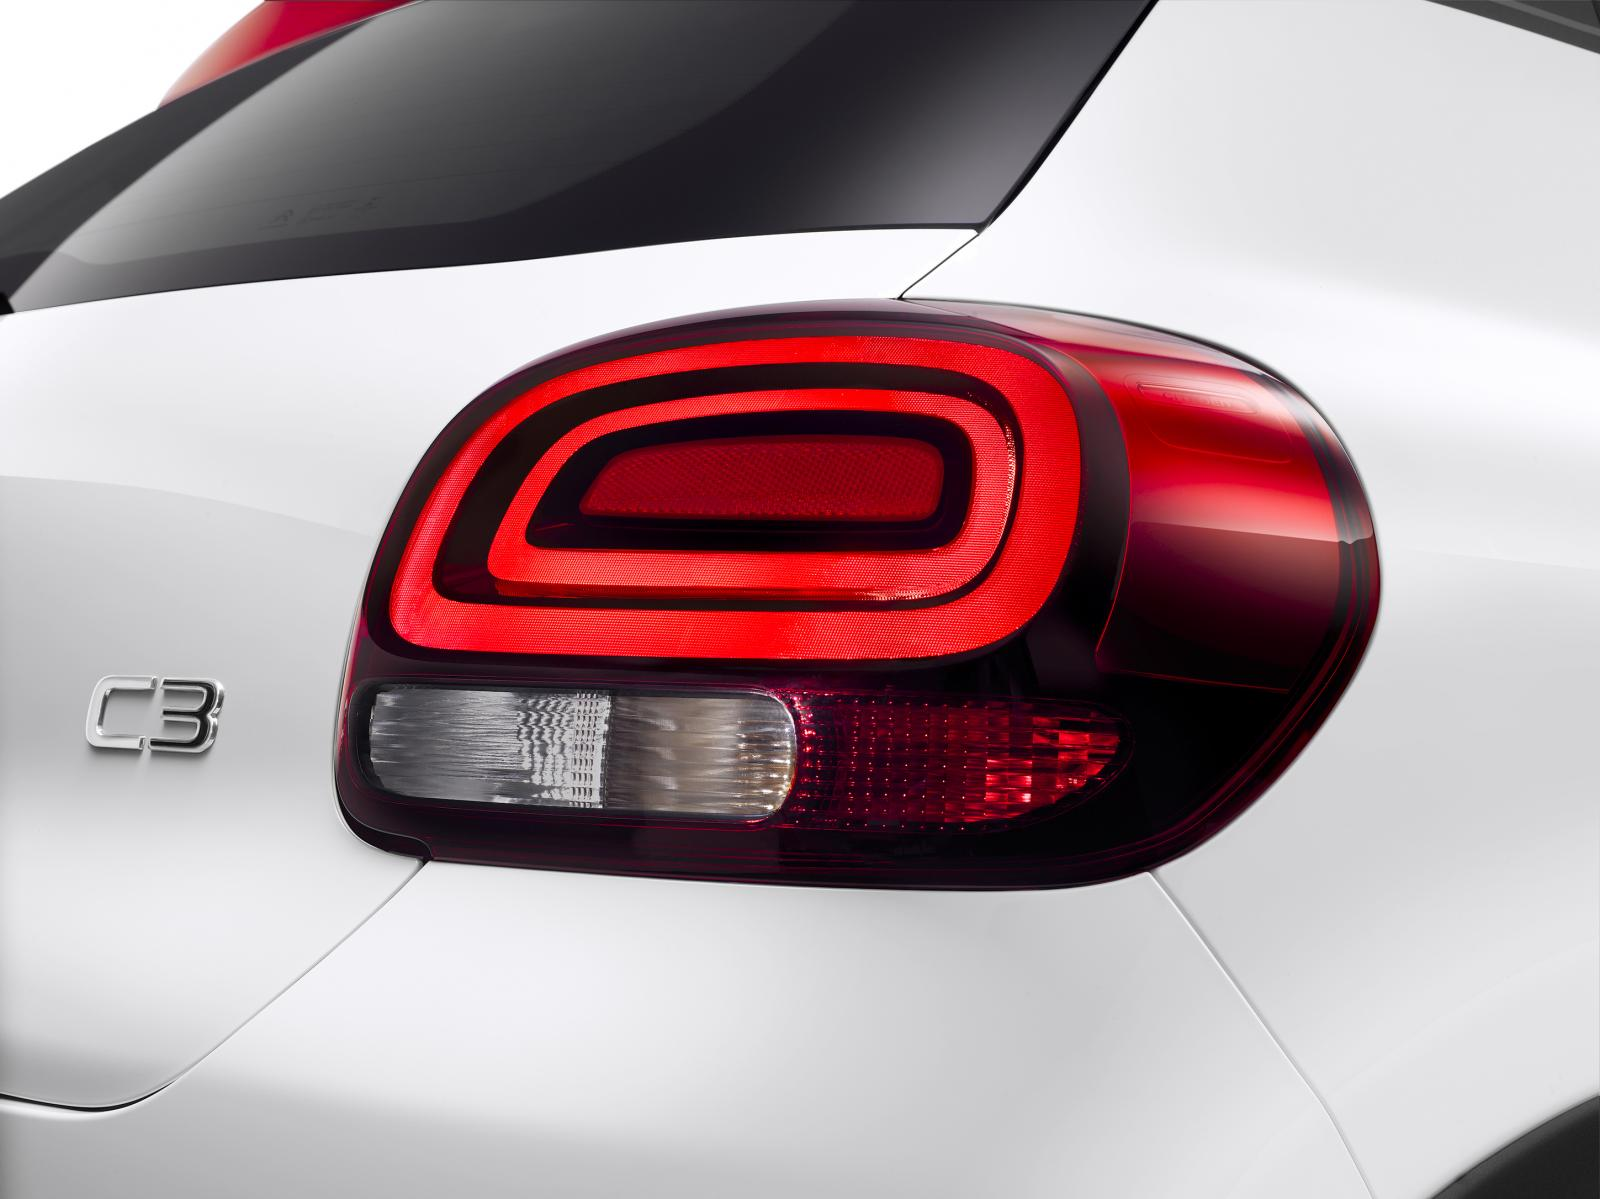 New C3 - detail brake light